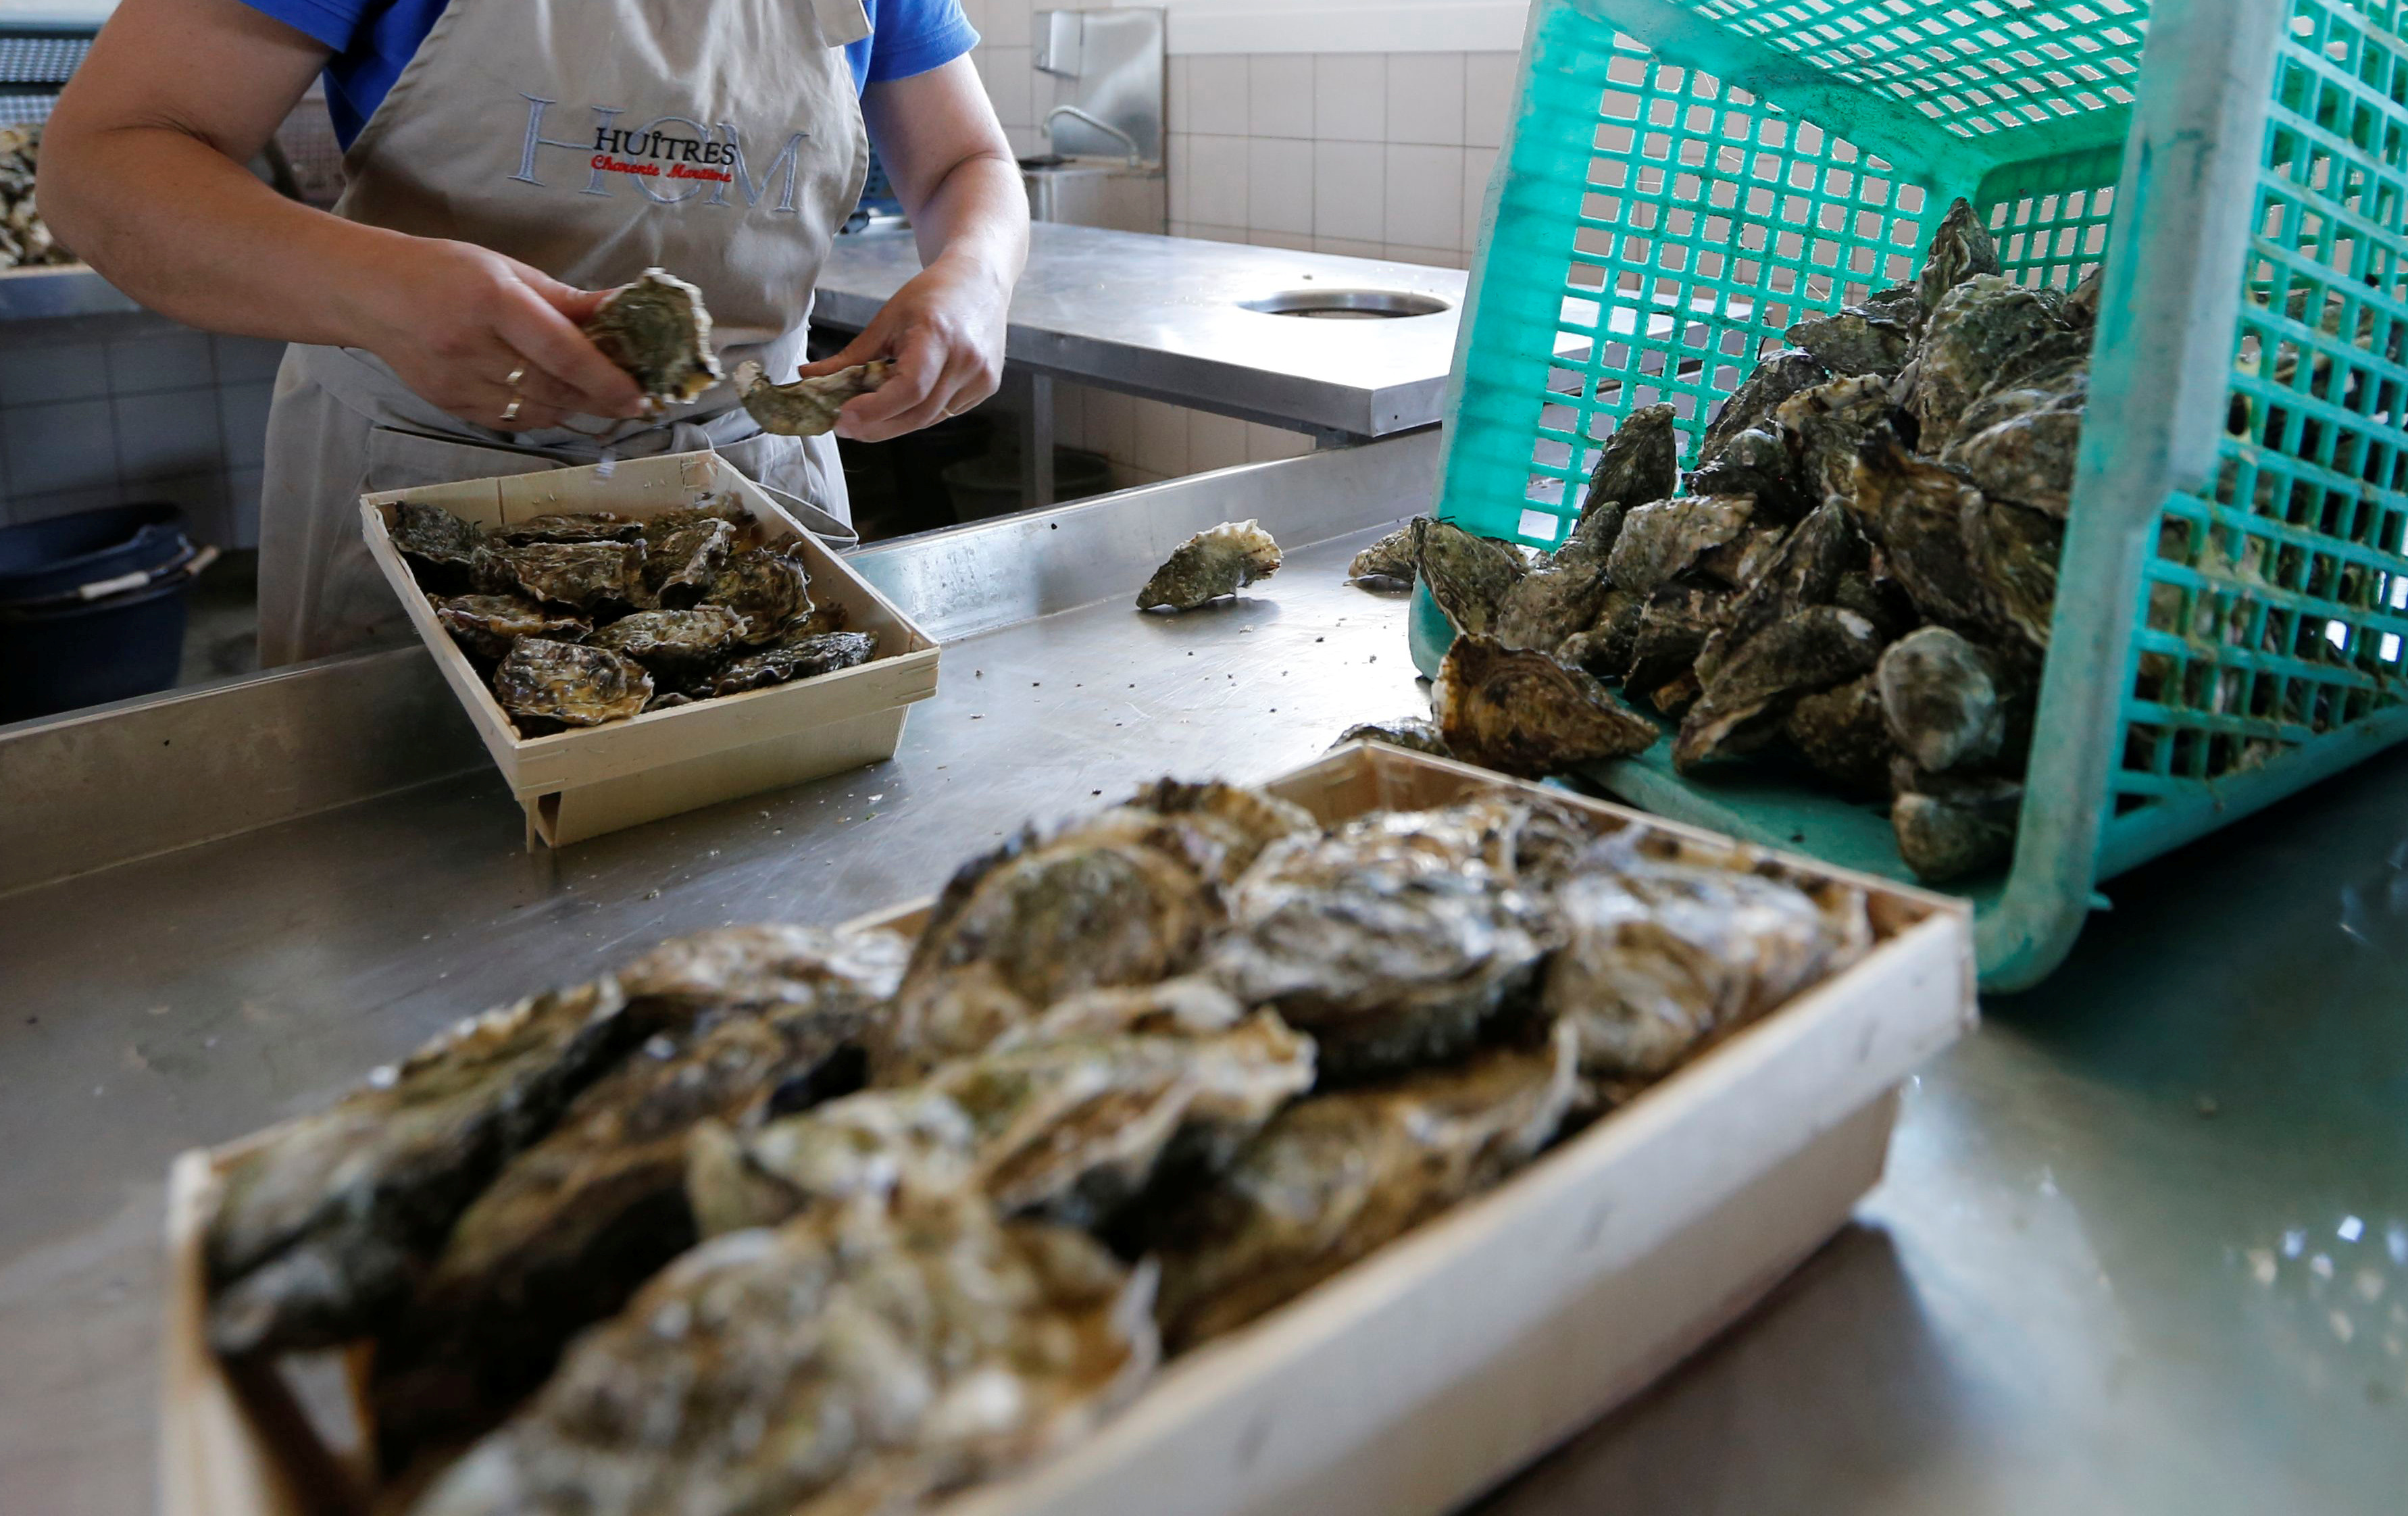 A worker prepares oysters for the automatic oyster vending machine at l'huitriere de Re in Ars en Re on the Re Island, Southwestern France